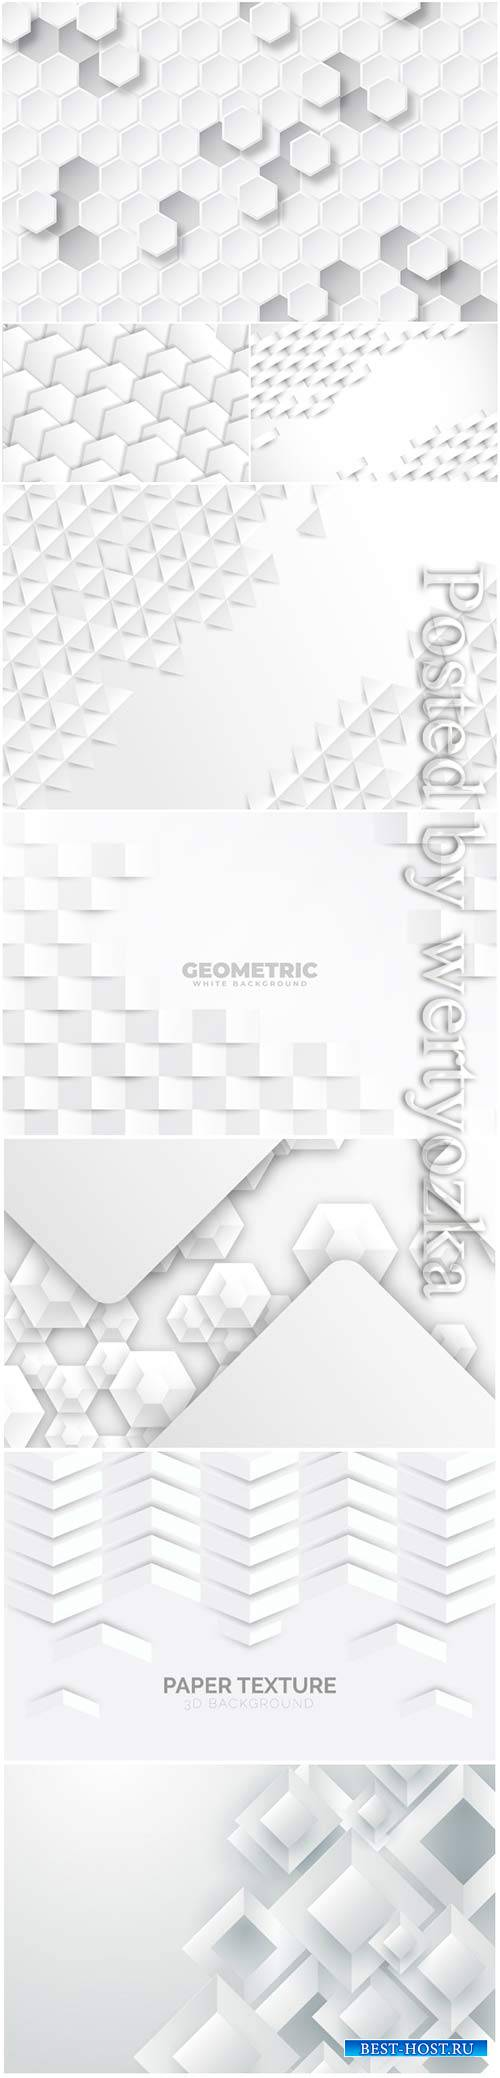 Abstract vector background, 3d models template # 2